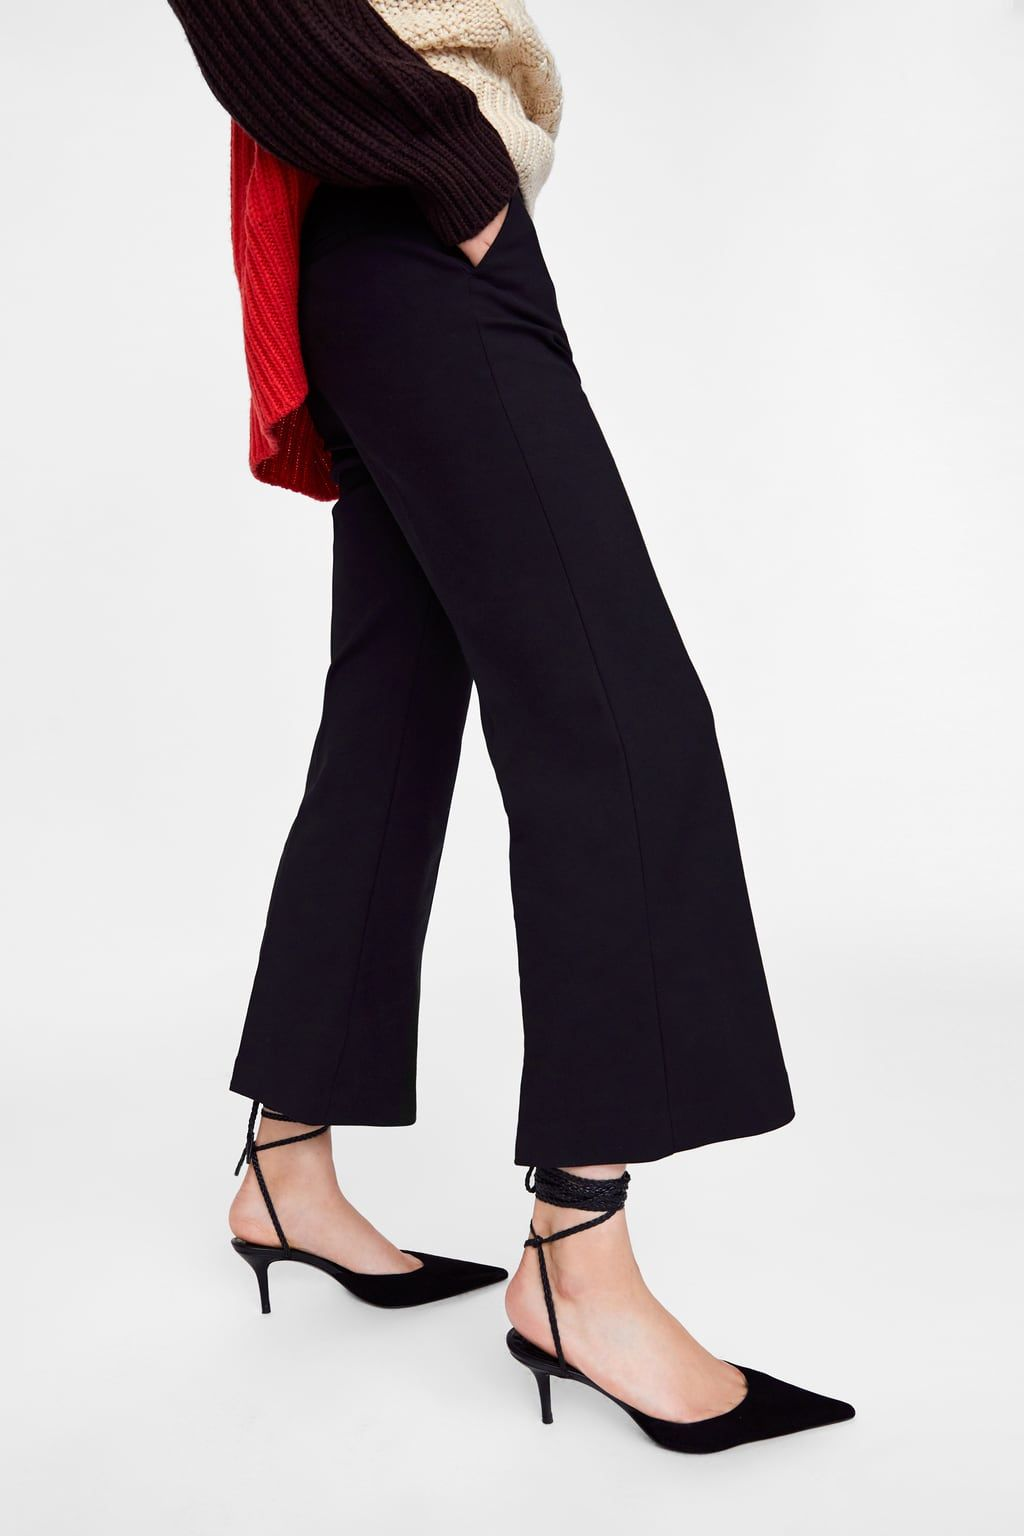 f3d86962 Image 4 of CROPPED FLARE PANTS from Zara | Wardrobe | Cropped flare ...